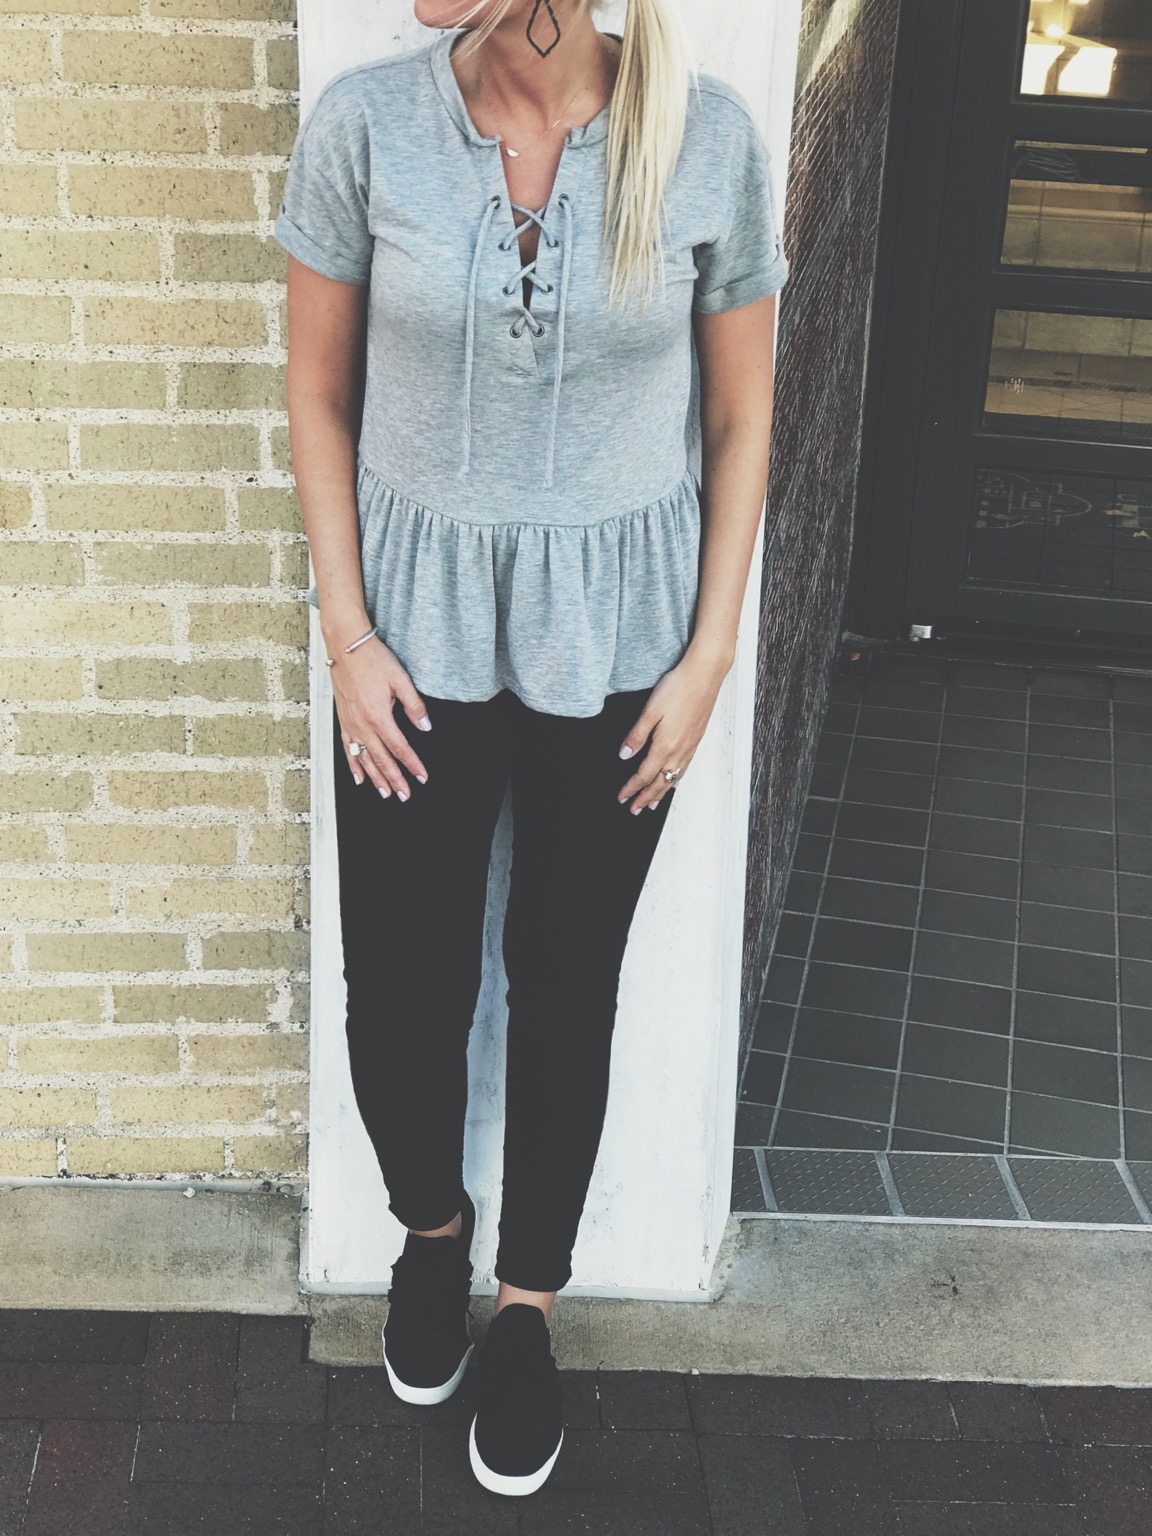 Peplum shirts have always been my go-to, especially because I think they are flattering on all body types! This top from Ever Eve runs big so size down! I am wearing a small! You've probably noticed most of my jeans come from Old Navy, reason being they offer a high-waisted style that is still long enough! (Tall people, check these out) and I usually stick with the Rockstar style, they have the most stretch! Athleisure sneakers are the perfect middle ground for the days when you have a million errands to run yet you still need to be put together. These Steve Madden lace up sneakers haven't left my feet since I bought them! P.s. I saw the perfect dupe at Target for $28, I could hardly tell the difference, but I know they are selling fast! Paired with a few of my everyday pieces & Kendra Scott Sophee Earrings, this  is the perfect errand running look!